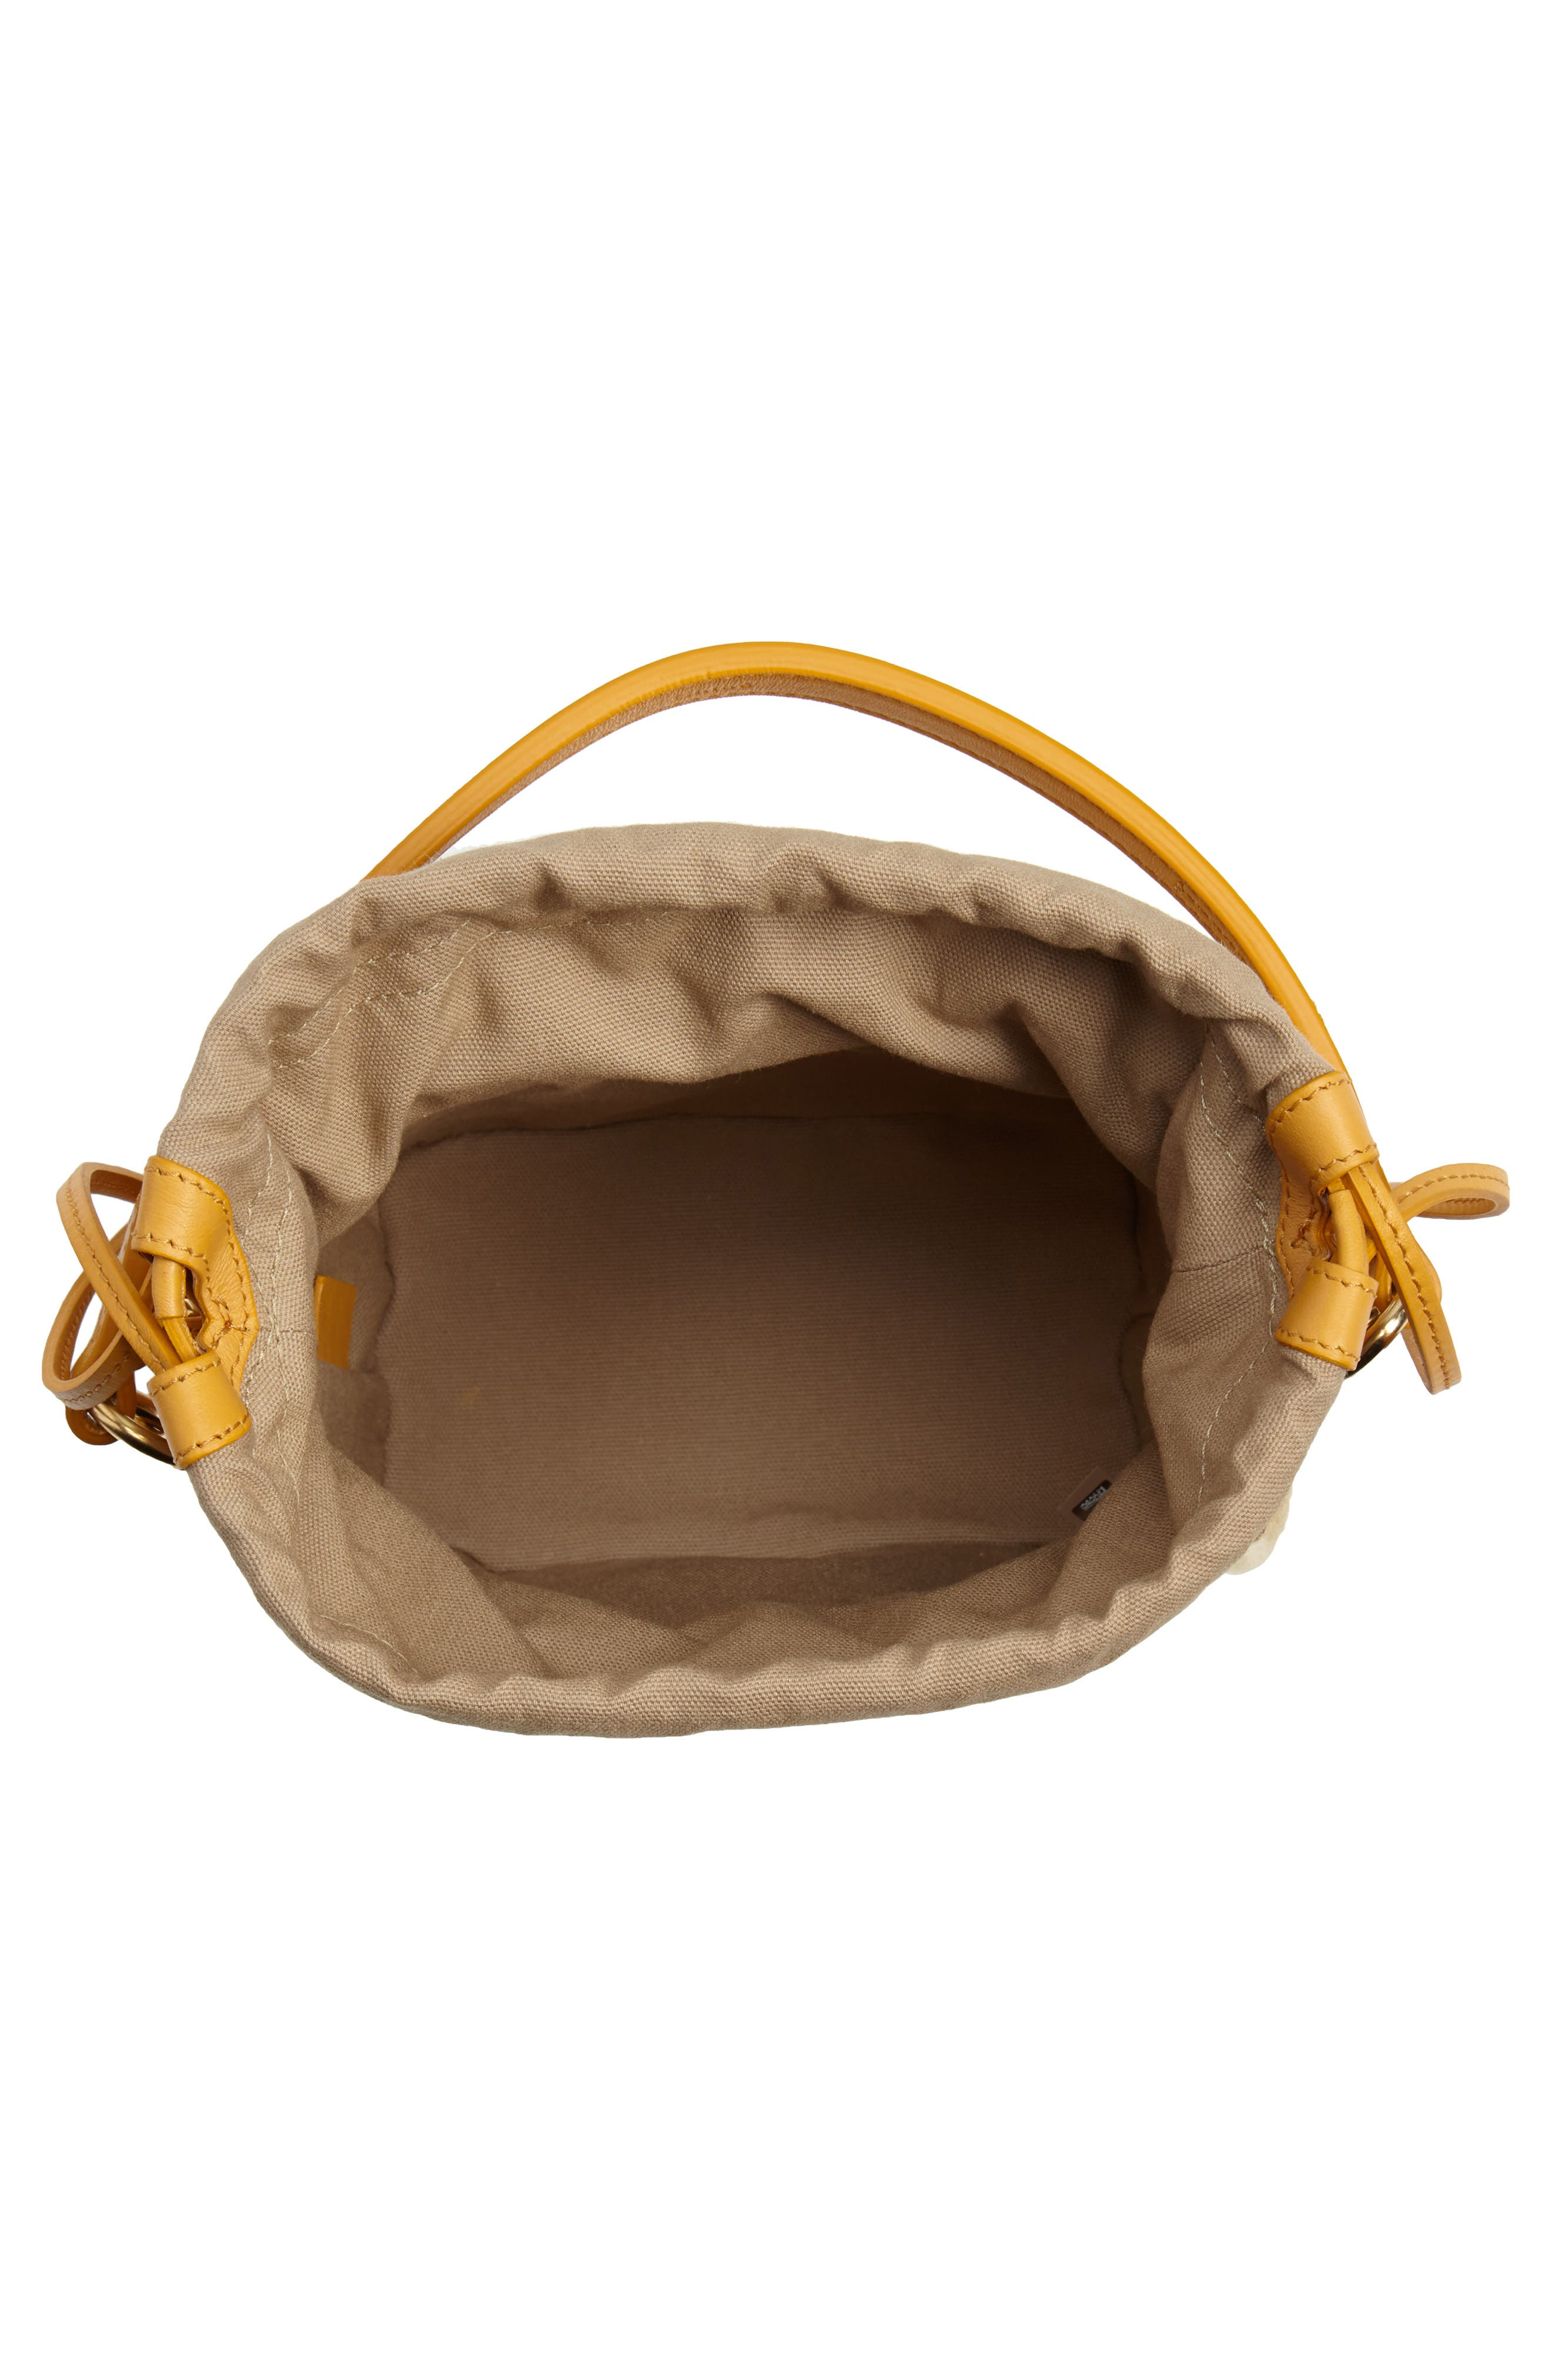 Roy Small Leather Bucket Bag,                             Alternate thumbnail 4, color,                             BURNING CAMEL